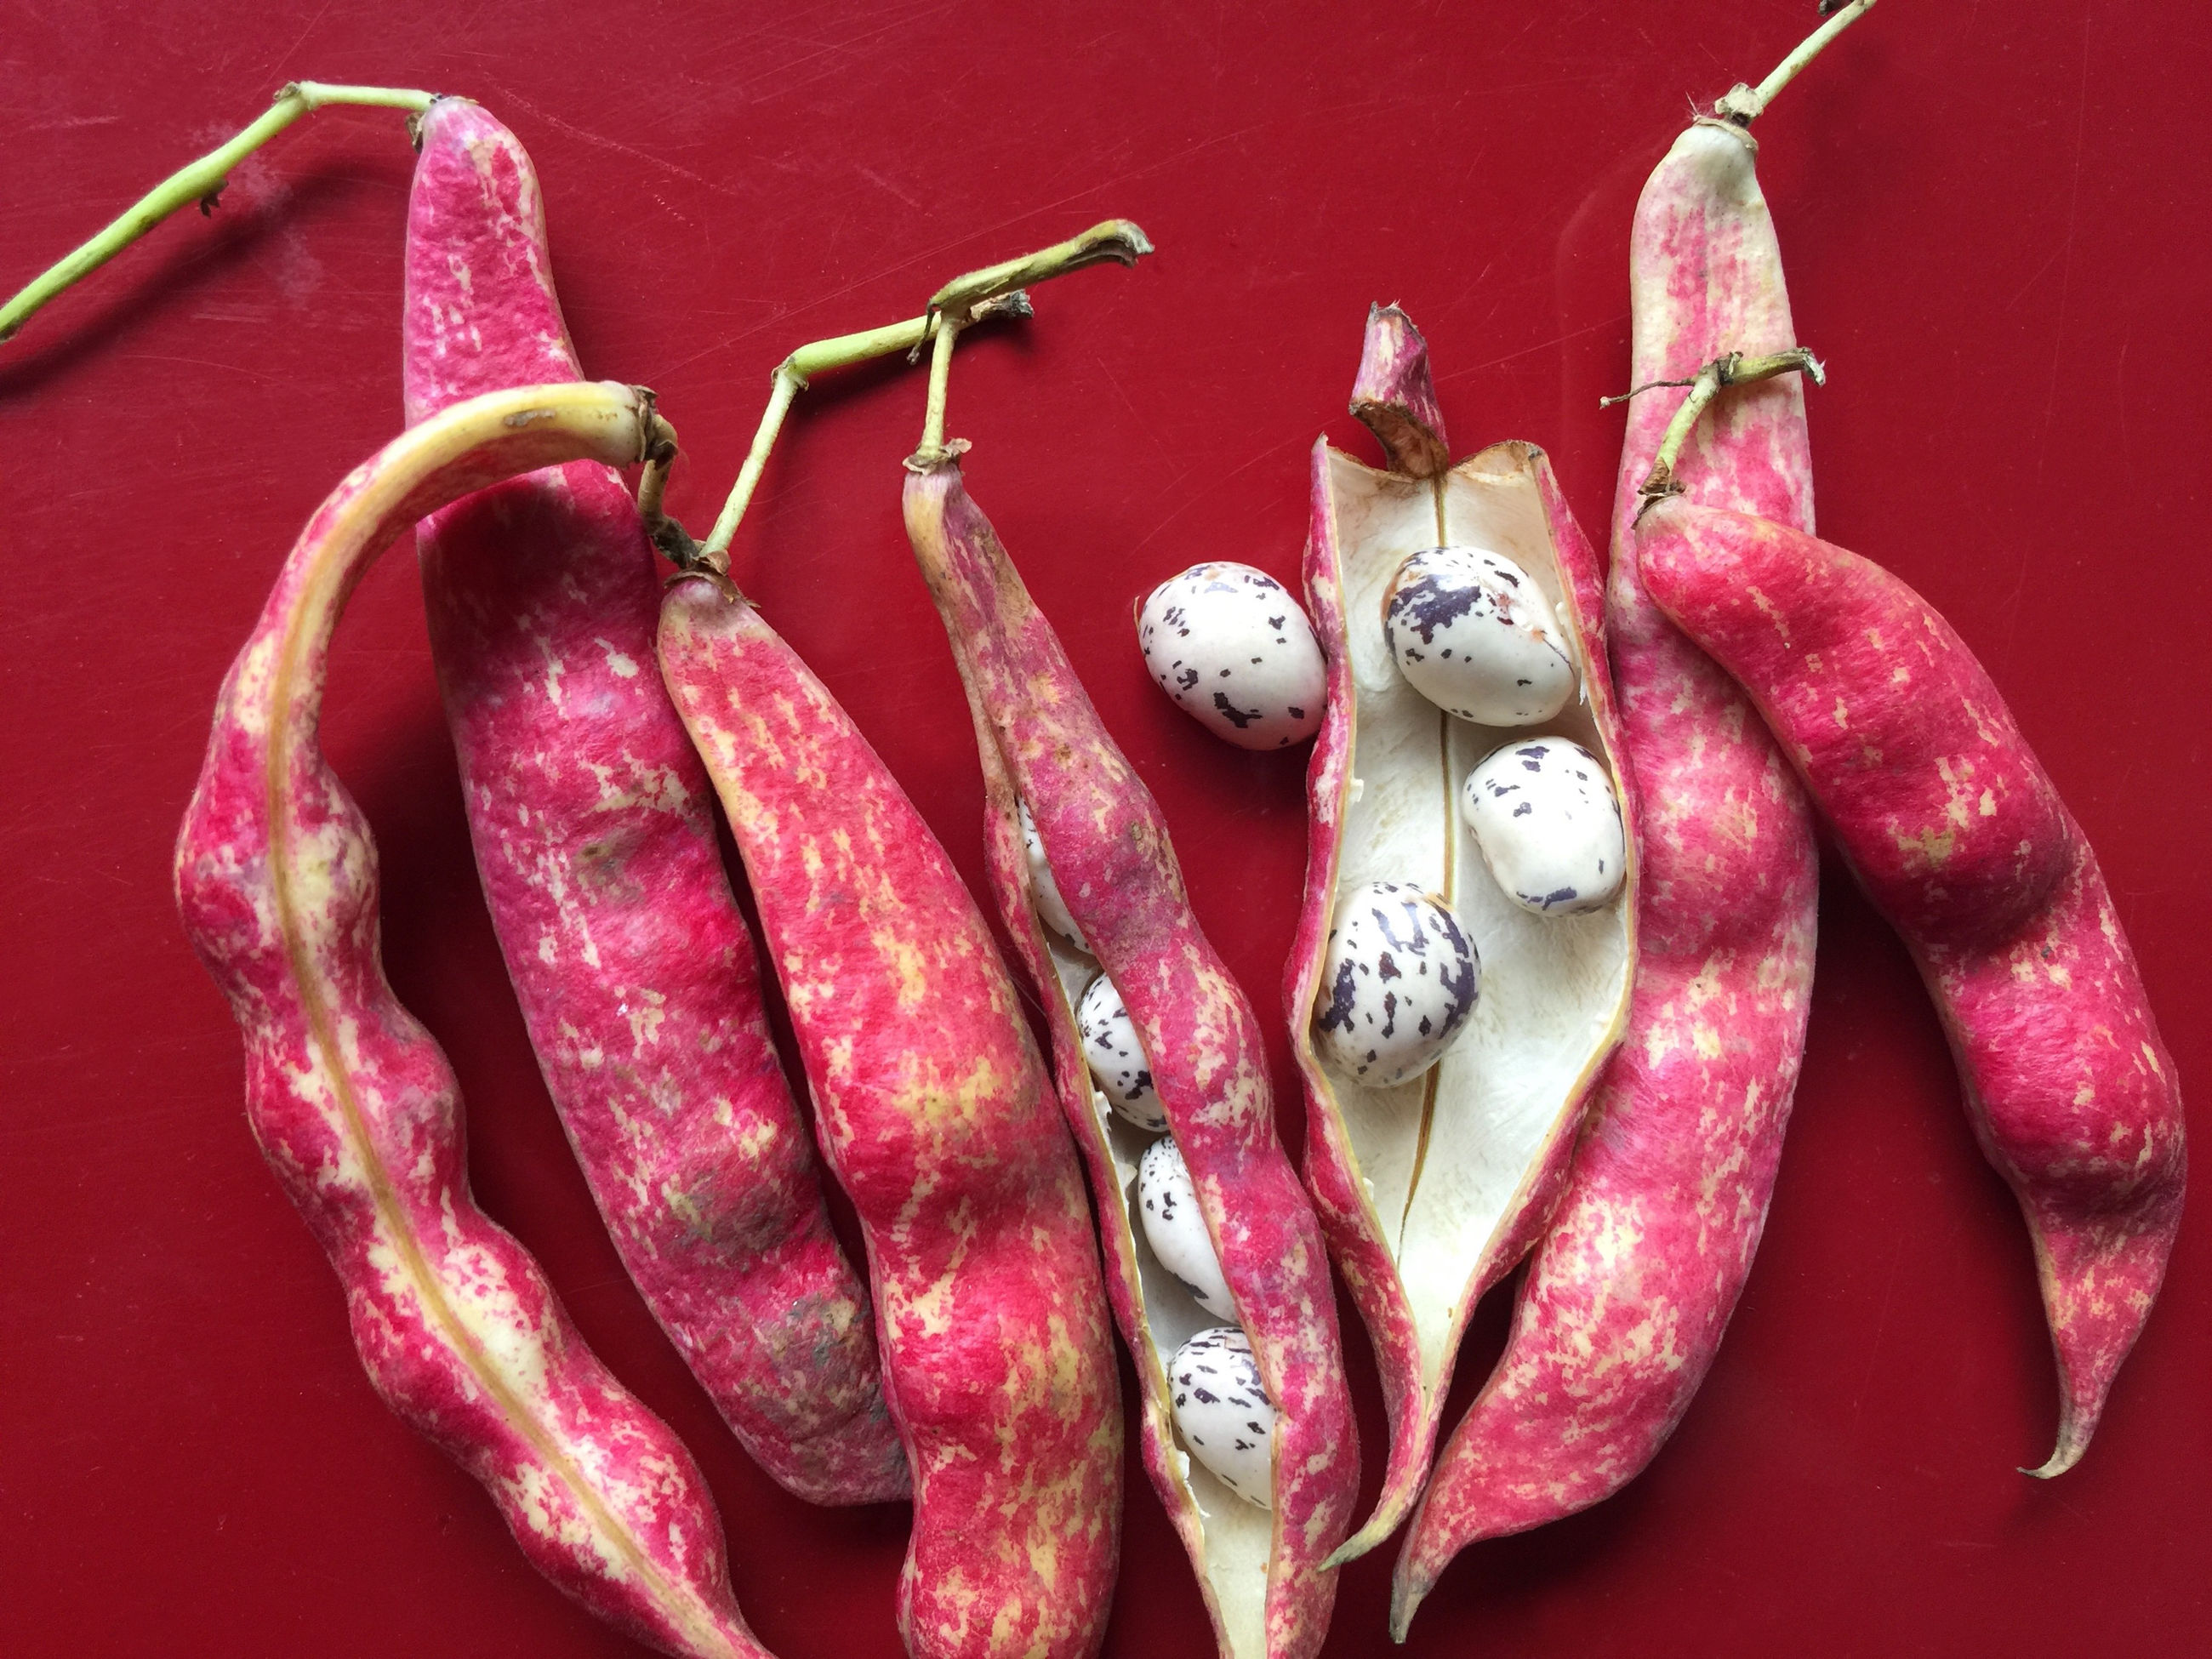 High angle view of cranberry beans on red table